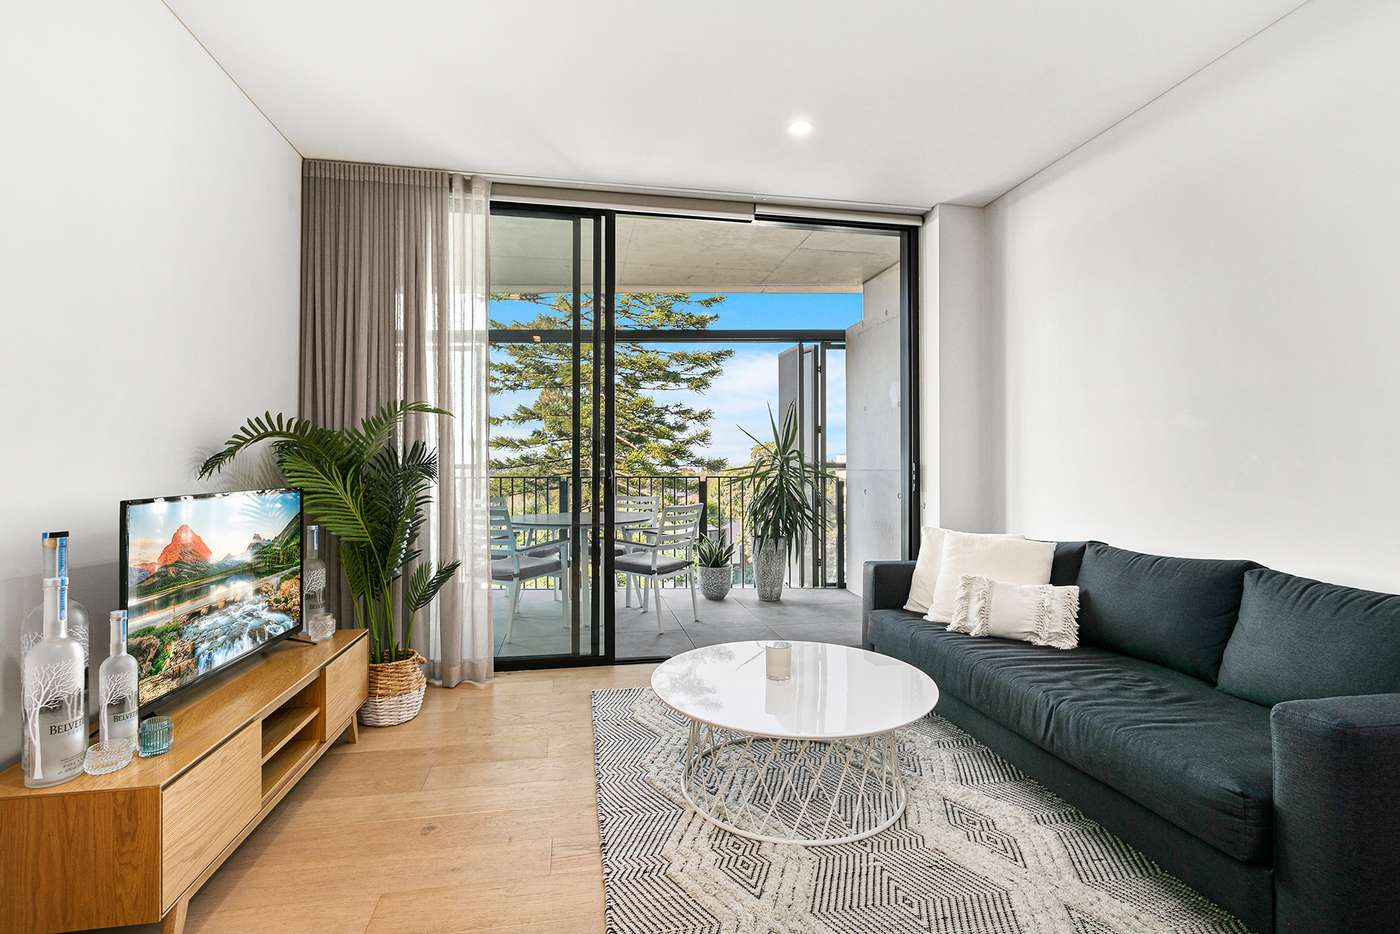 Main view of Homely apartment listing, 306/416 Kingsway, Caringbah NSW 2229